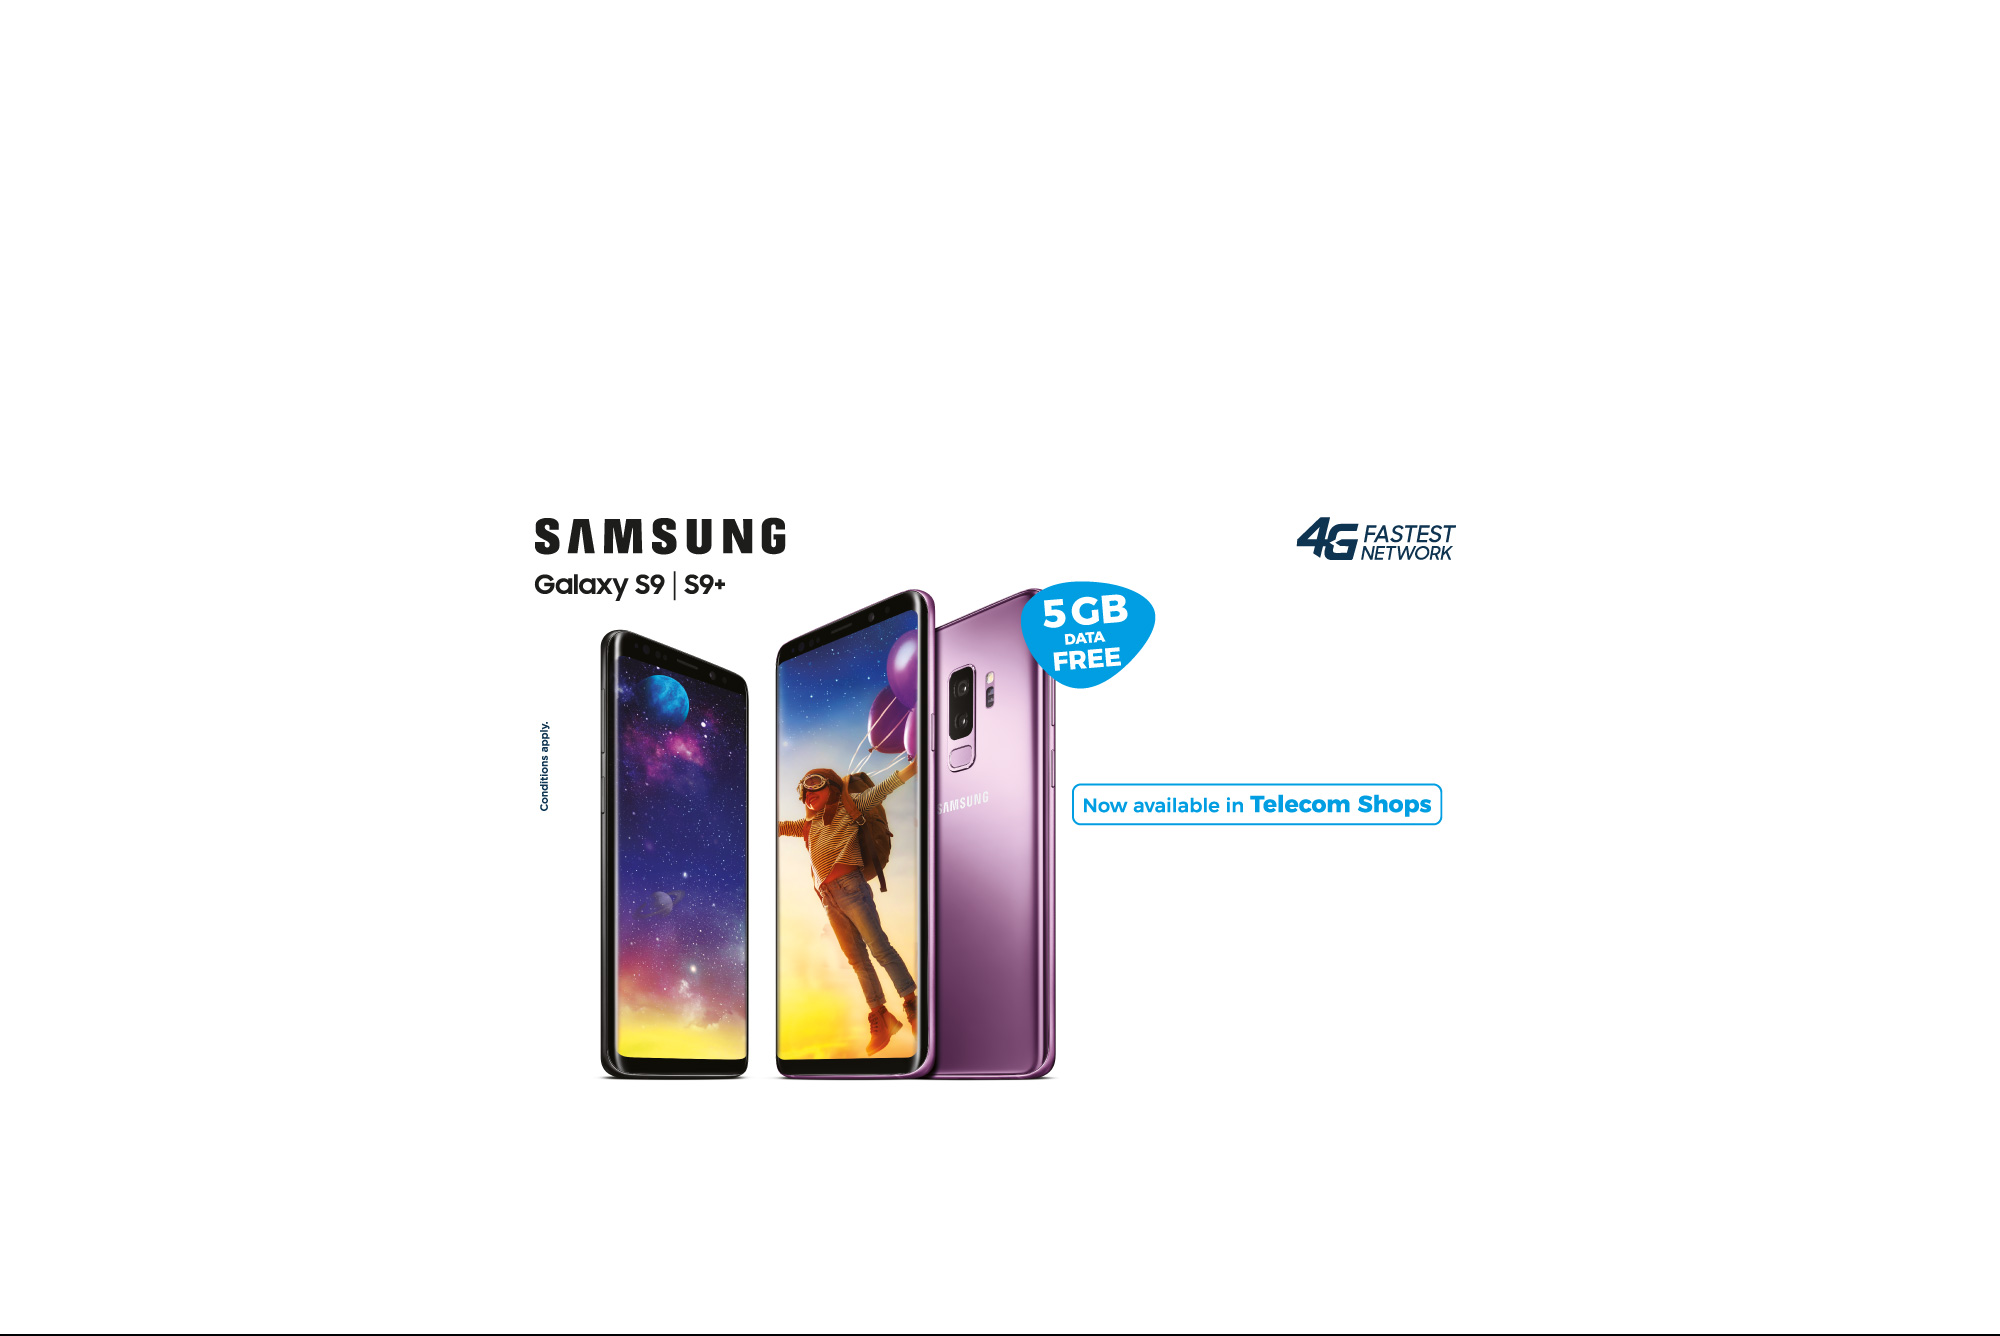 samsung S9 - Available in telecom shops